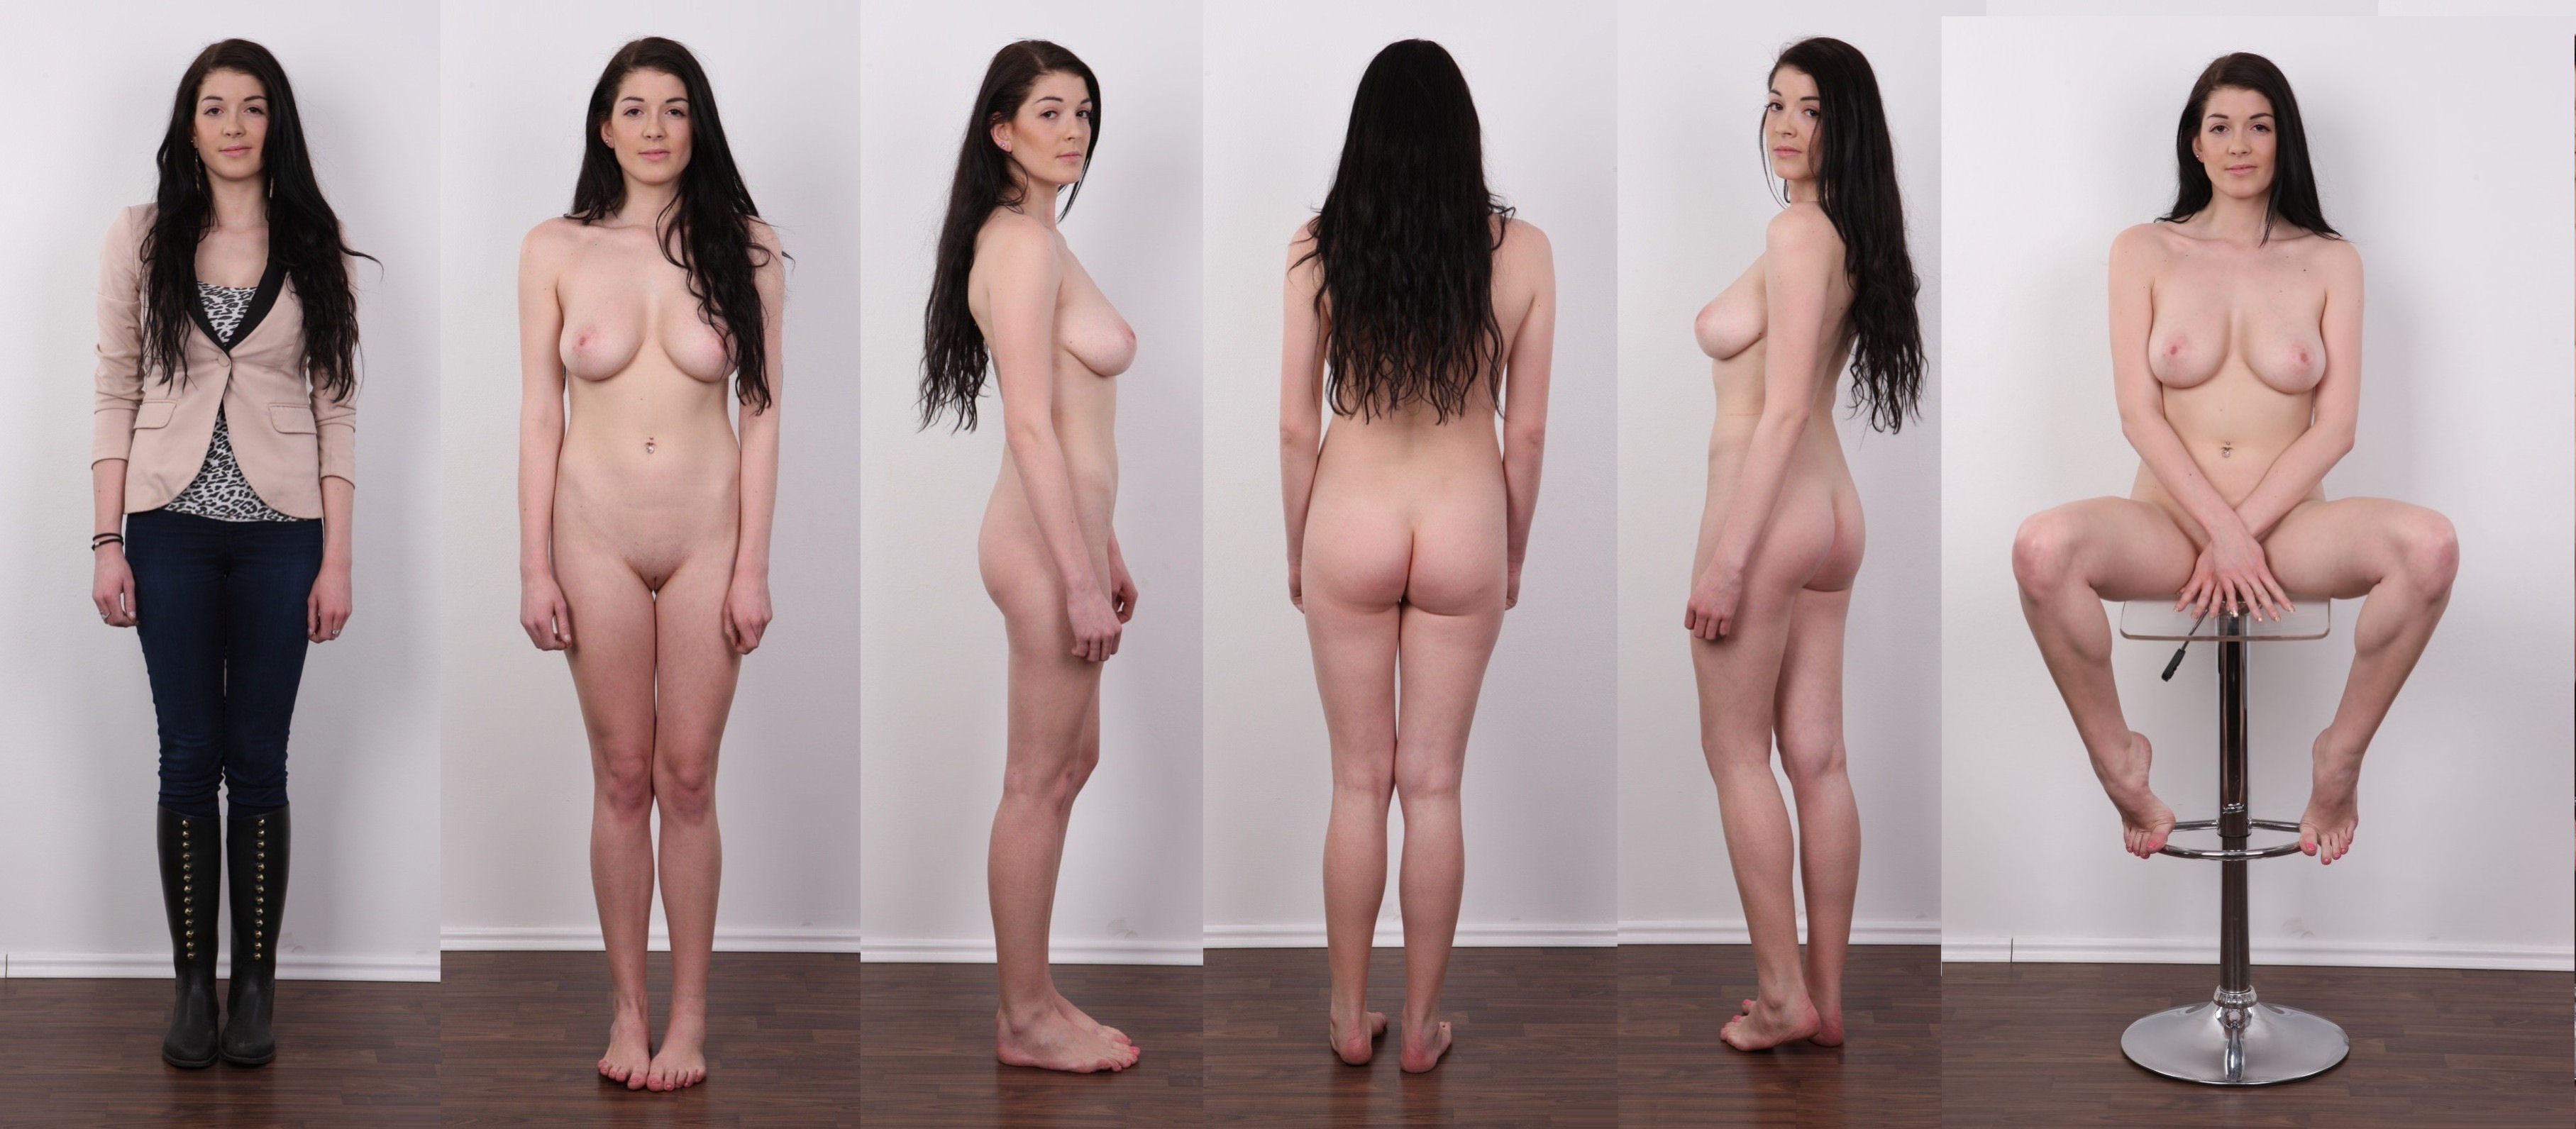 Chamber nude girls without pads